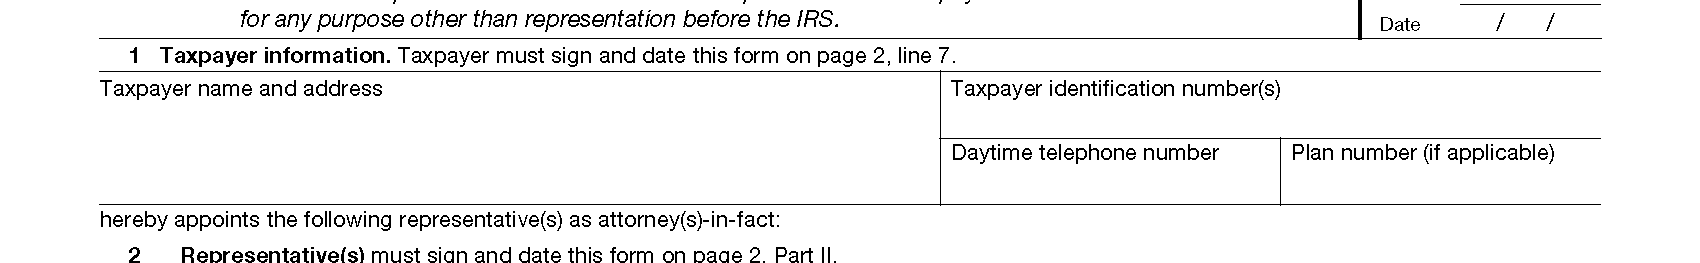 2848 Taxpayer Info